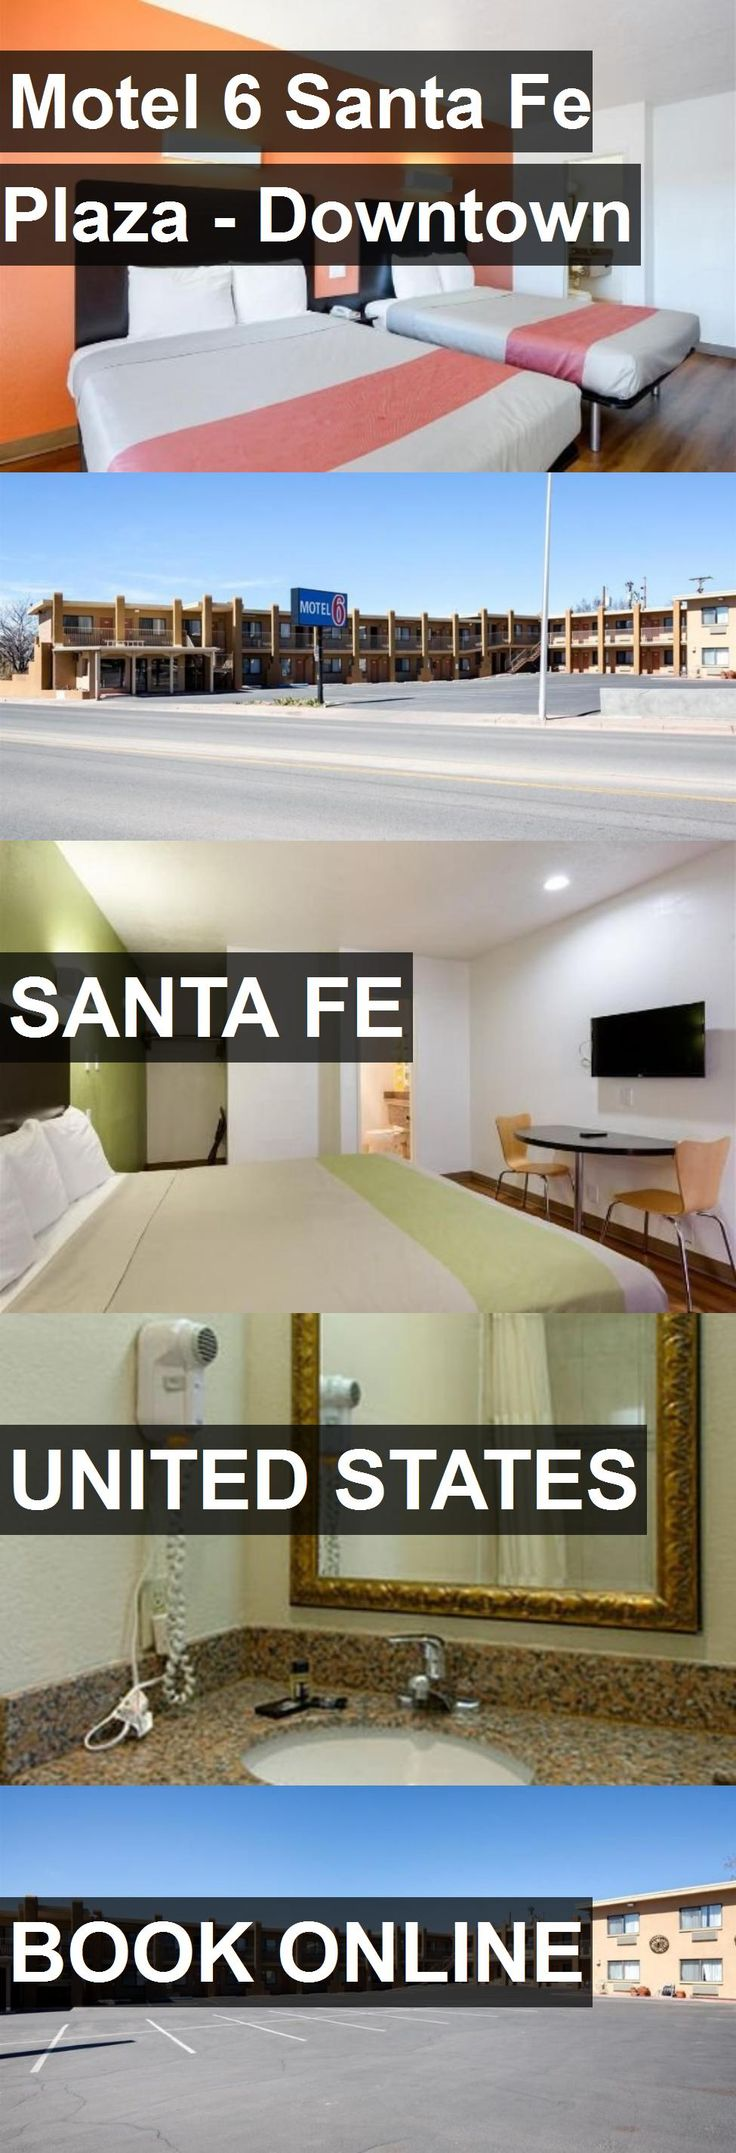 Hotel Motel 6 Santa Fe Plaza - Downtown in Santa Fe, United States. For more information, photos, reviews and best prices please follow the link. #UnitedStates #SantaFe #travel #vacation #hotel